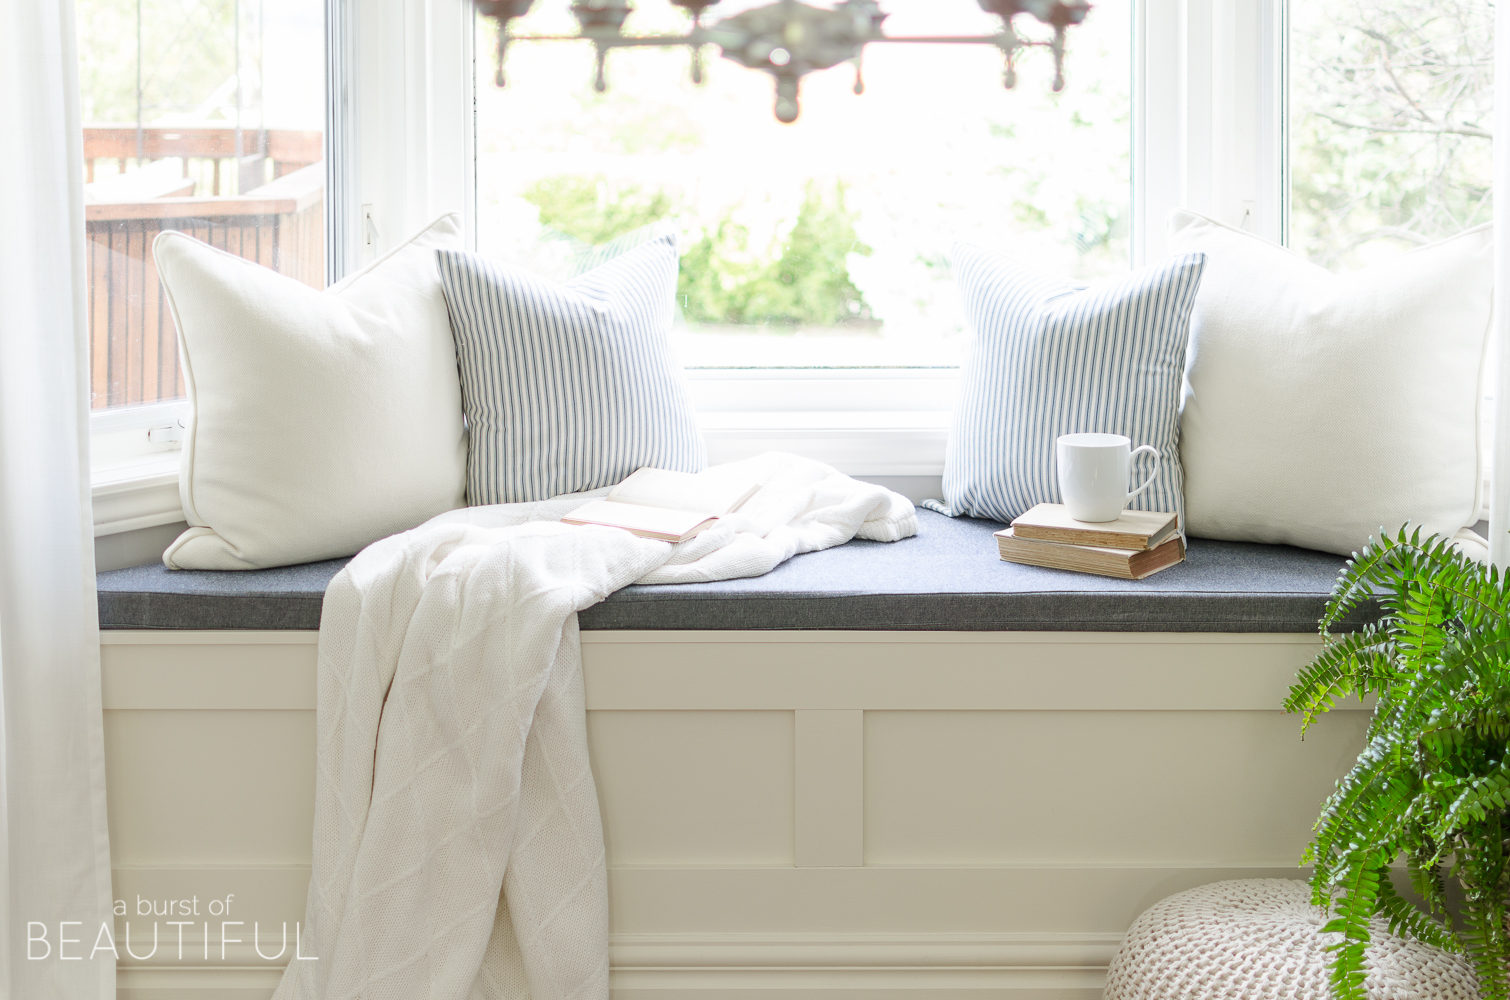 Delicieux A DIY Window Bench With Storage Adds Character And Charm To A Simple Window  Nook.